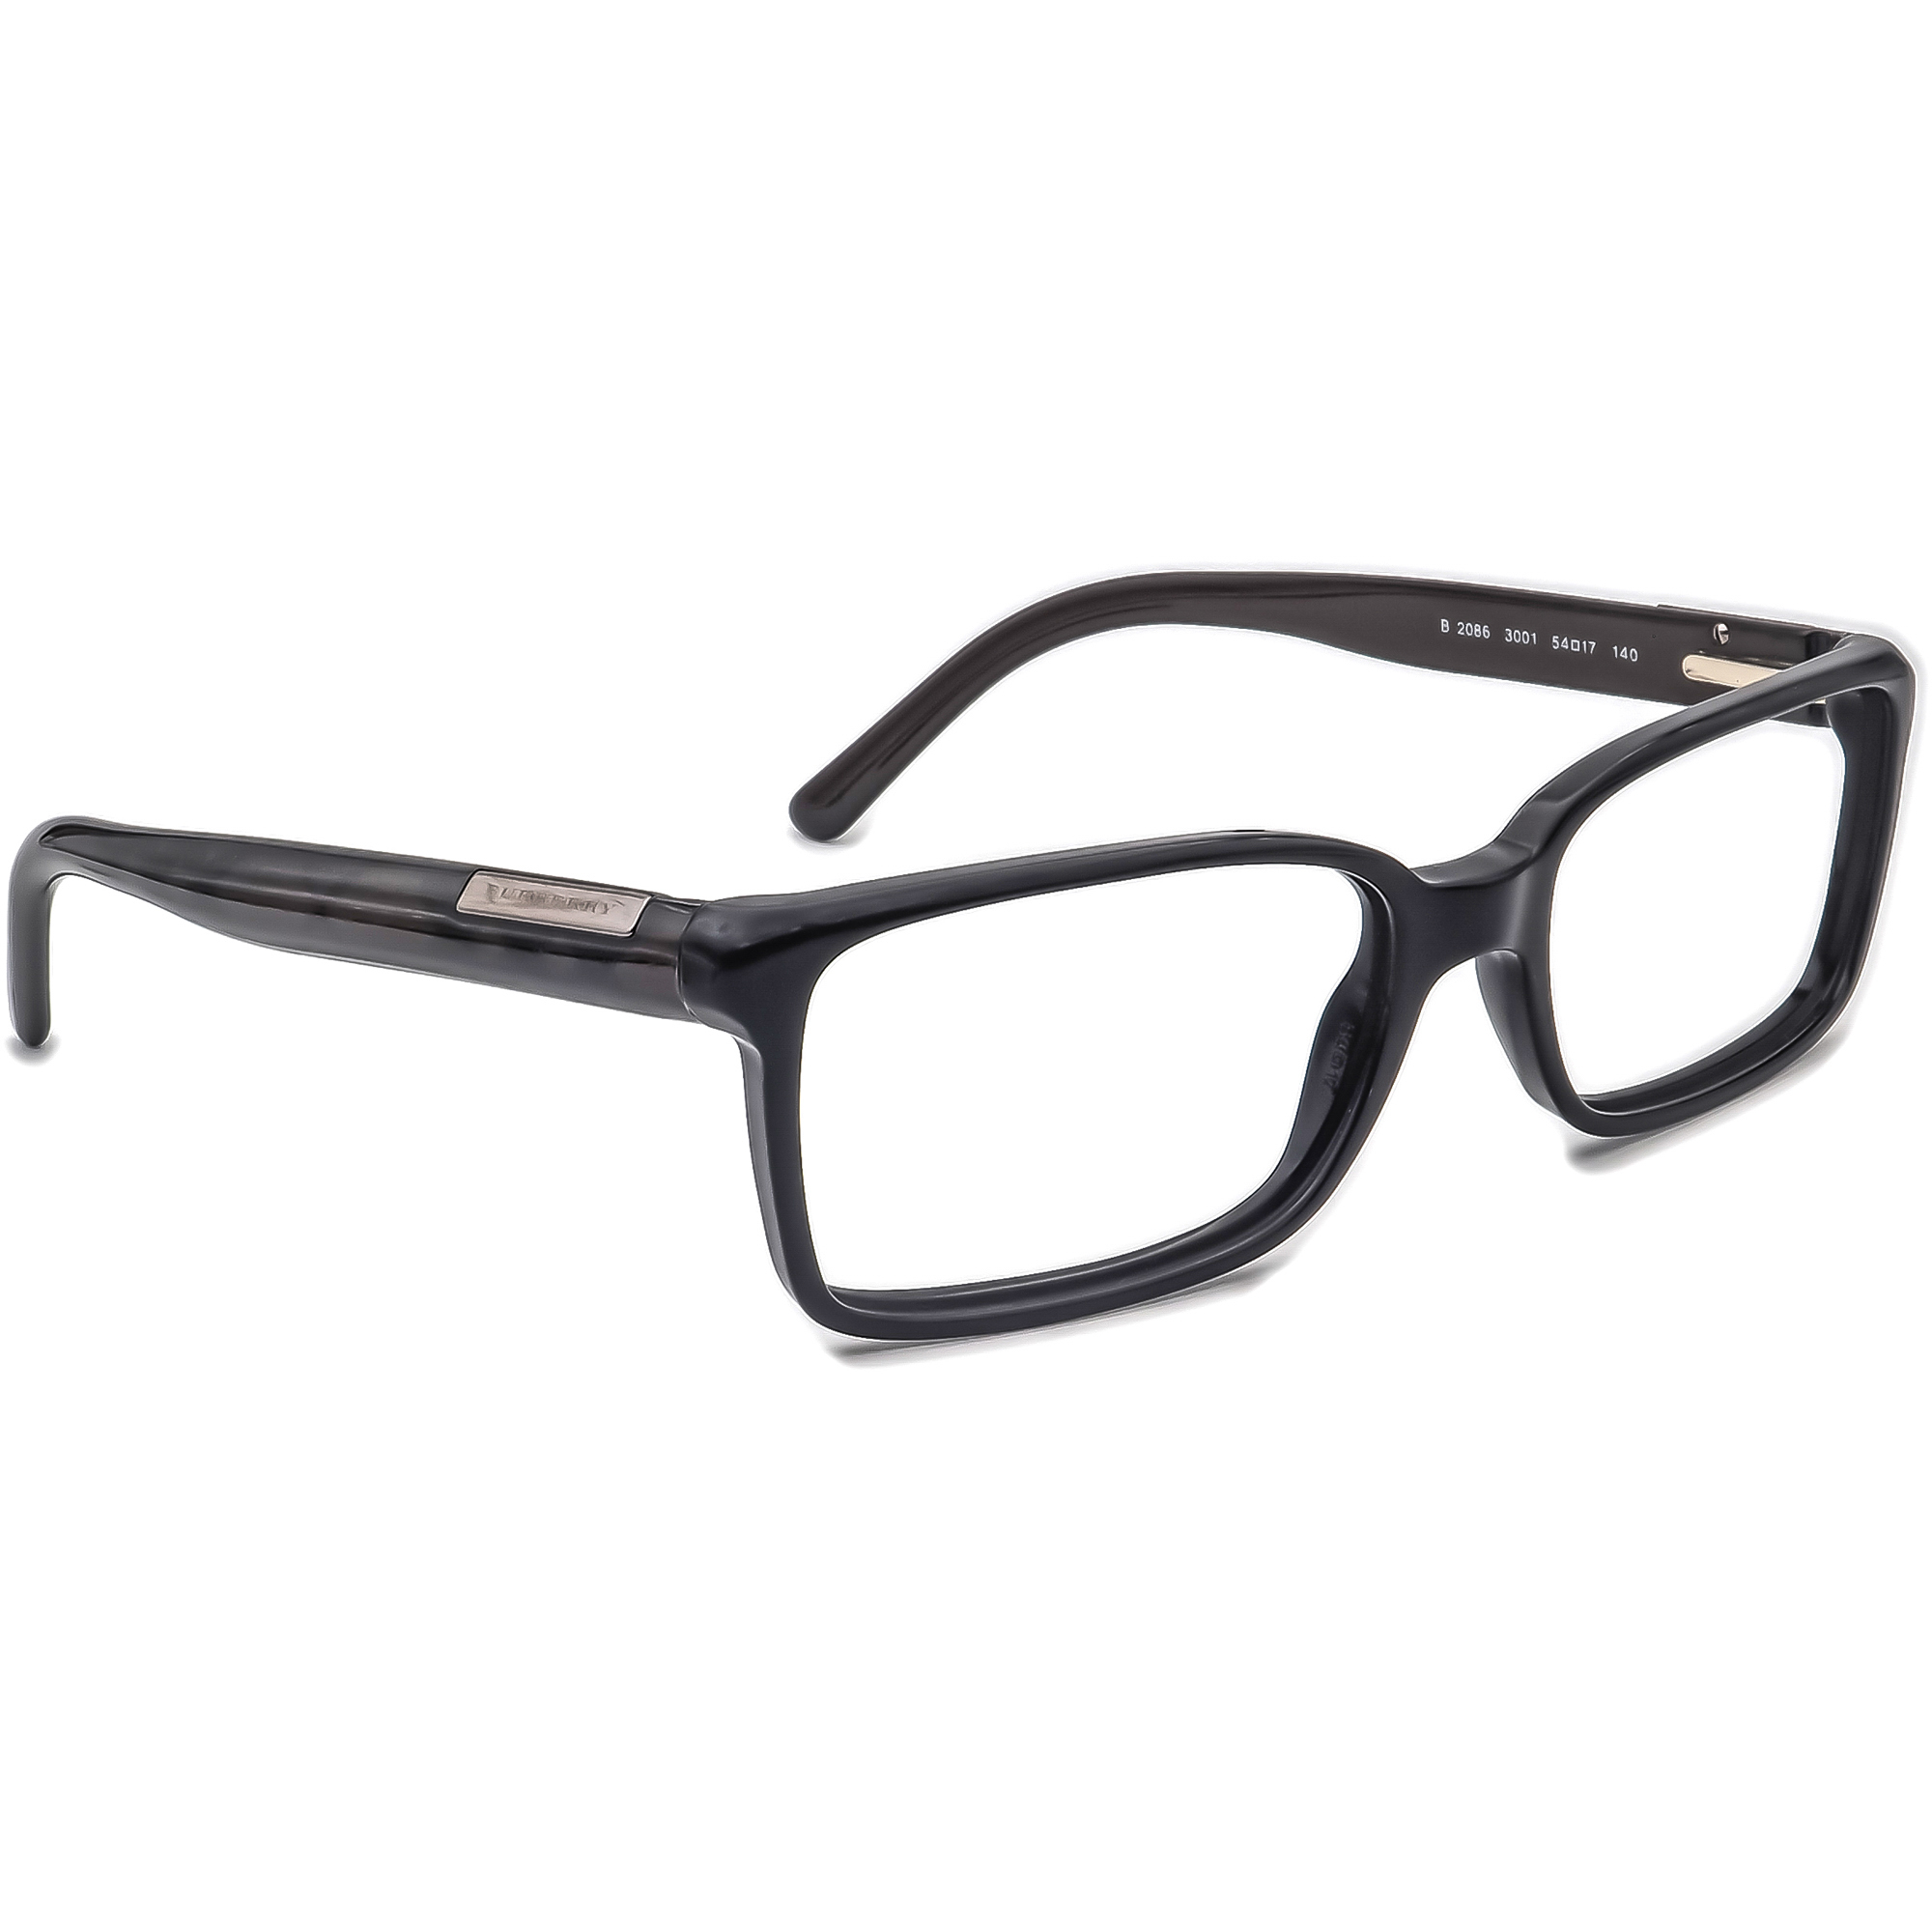 Burberry B 2086 3001 Eyeglasses